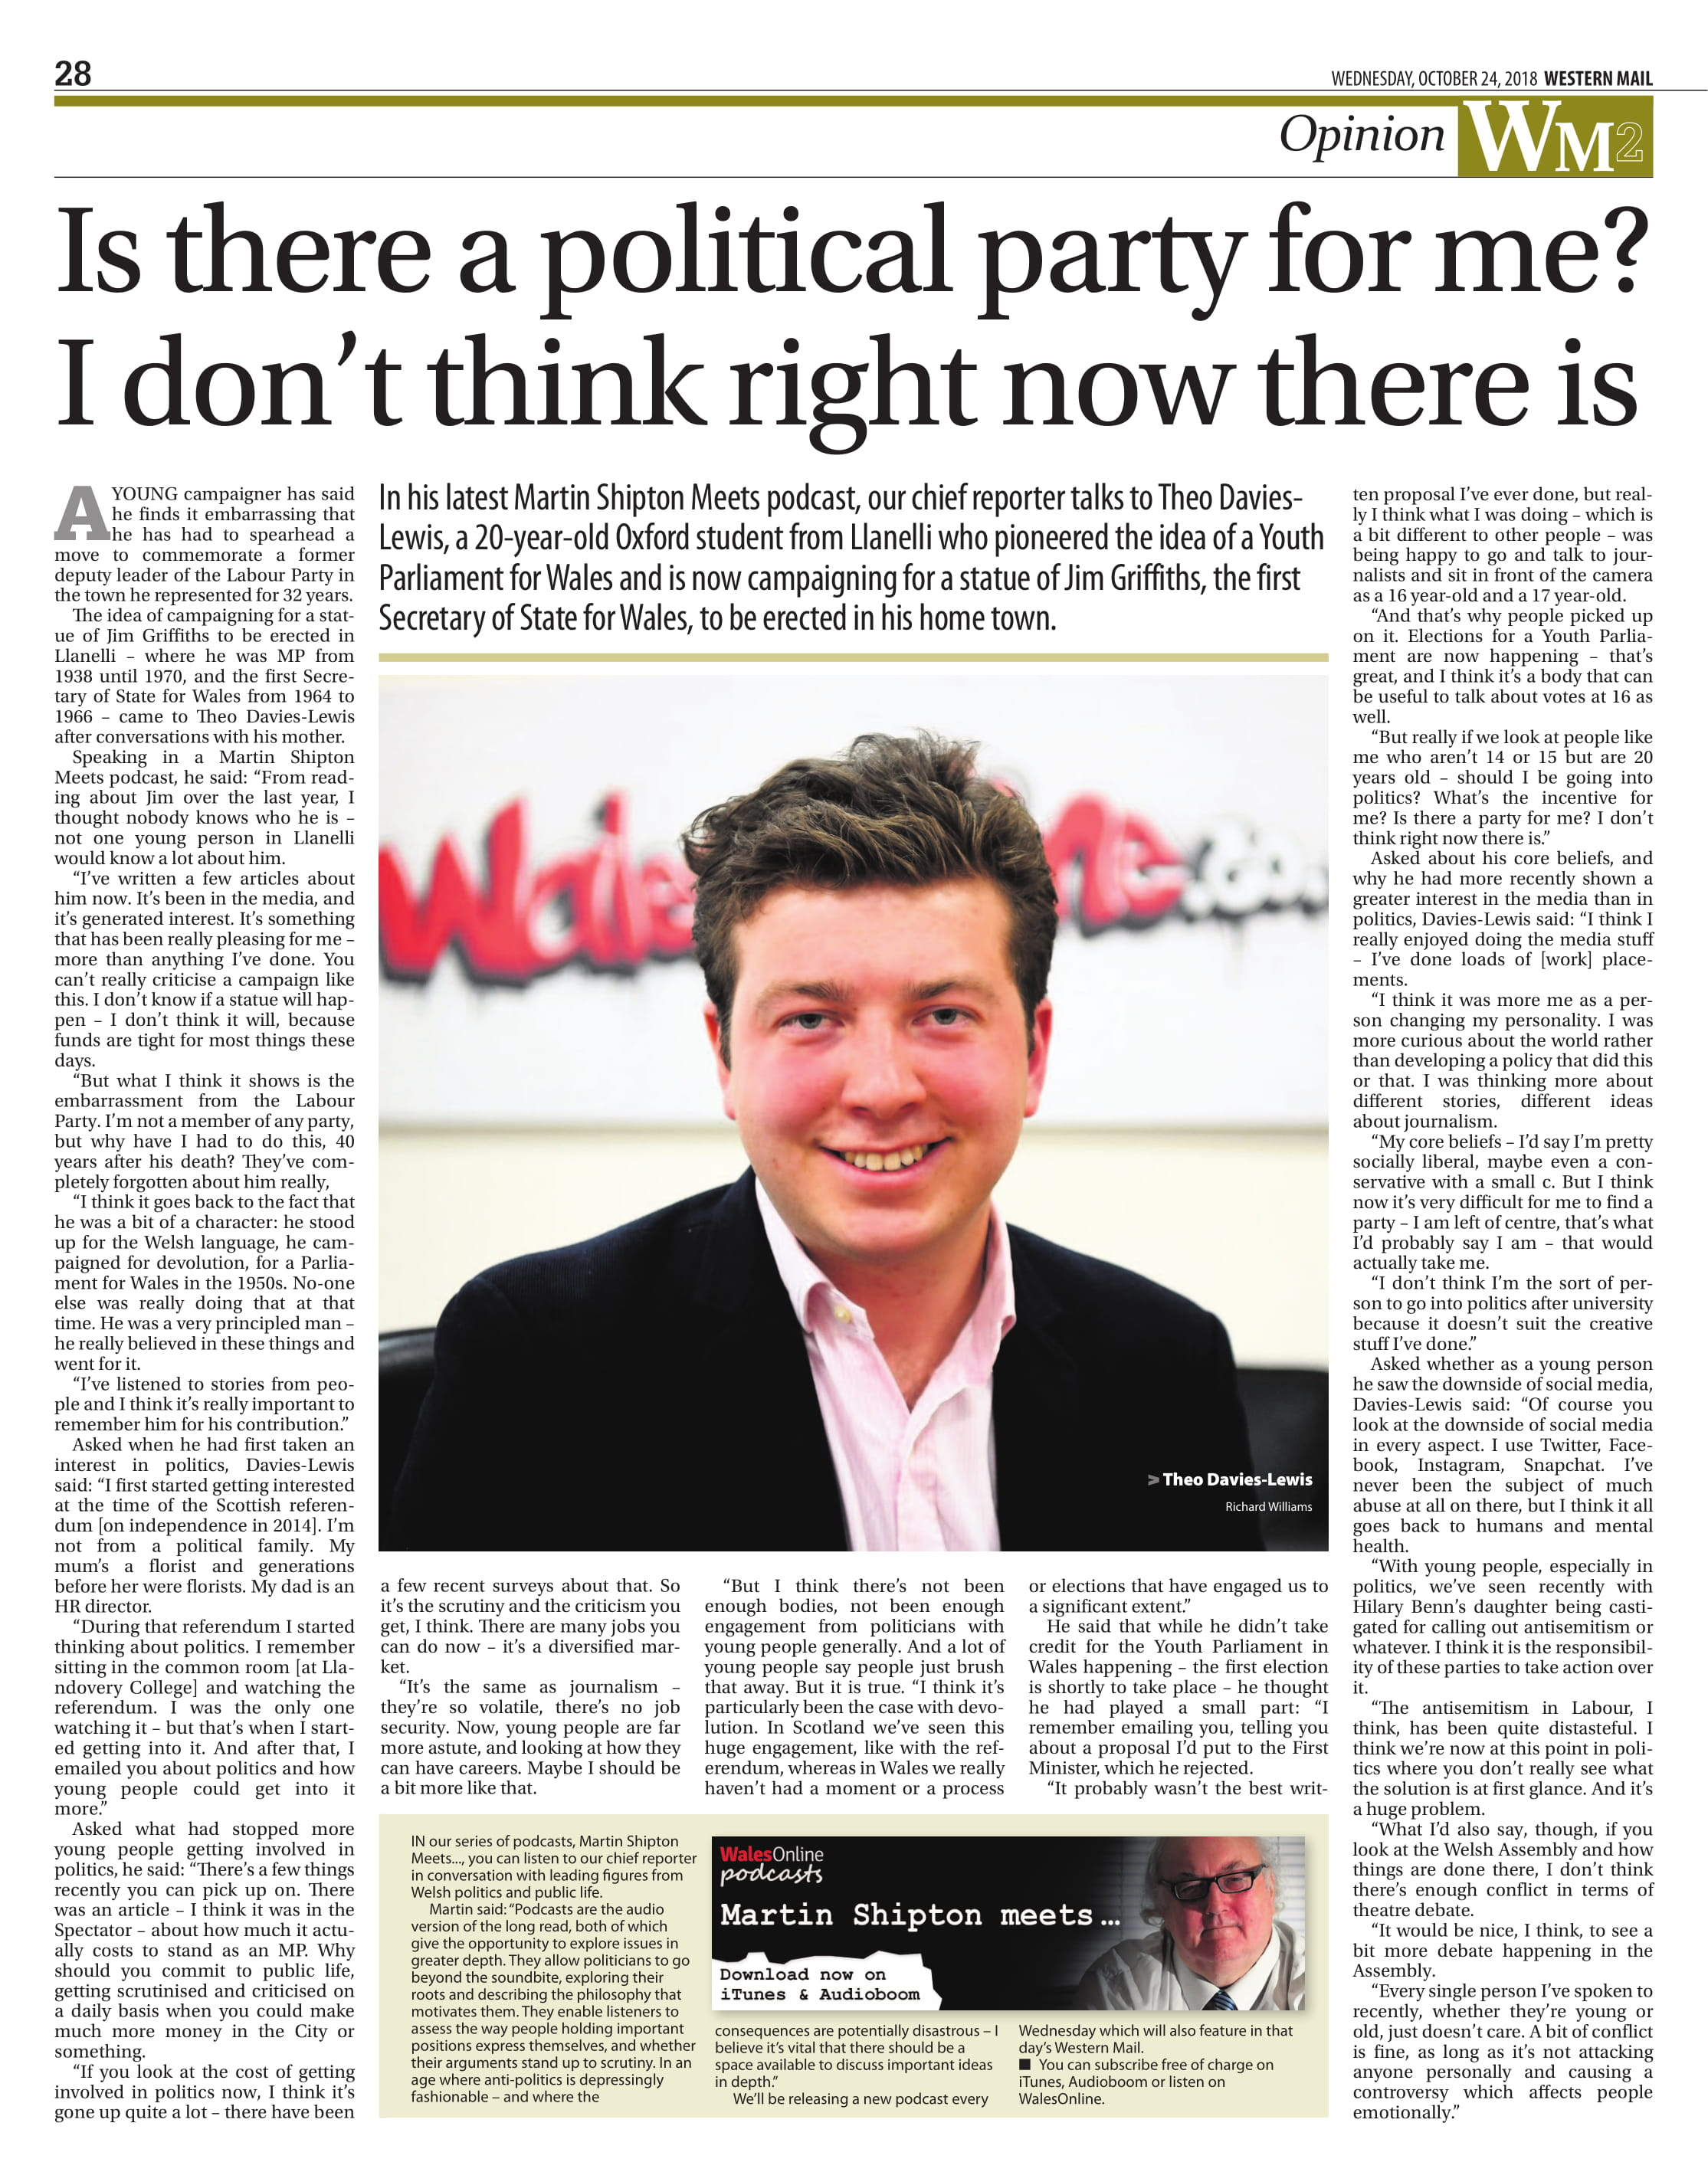 My full page spread in Wales' national newspaper following the interview.